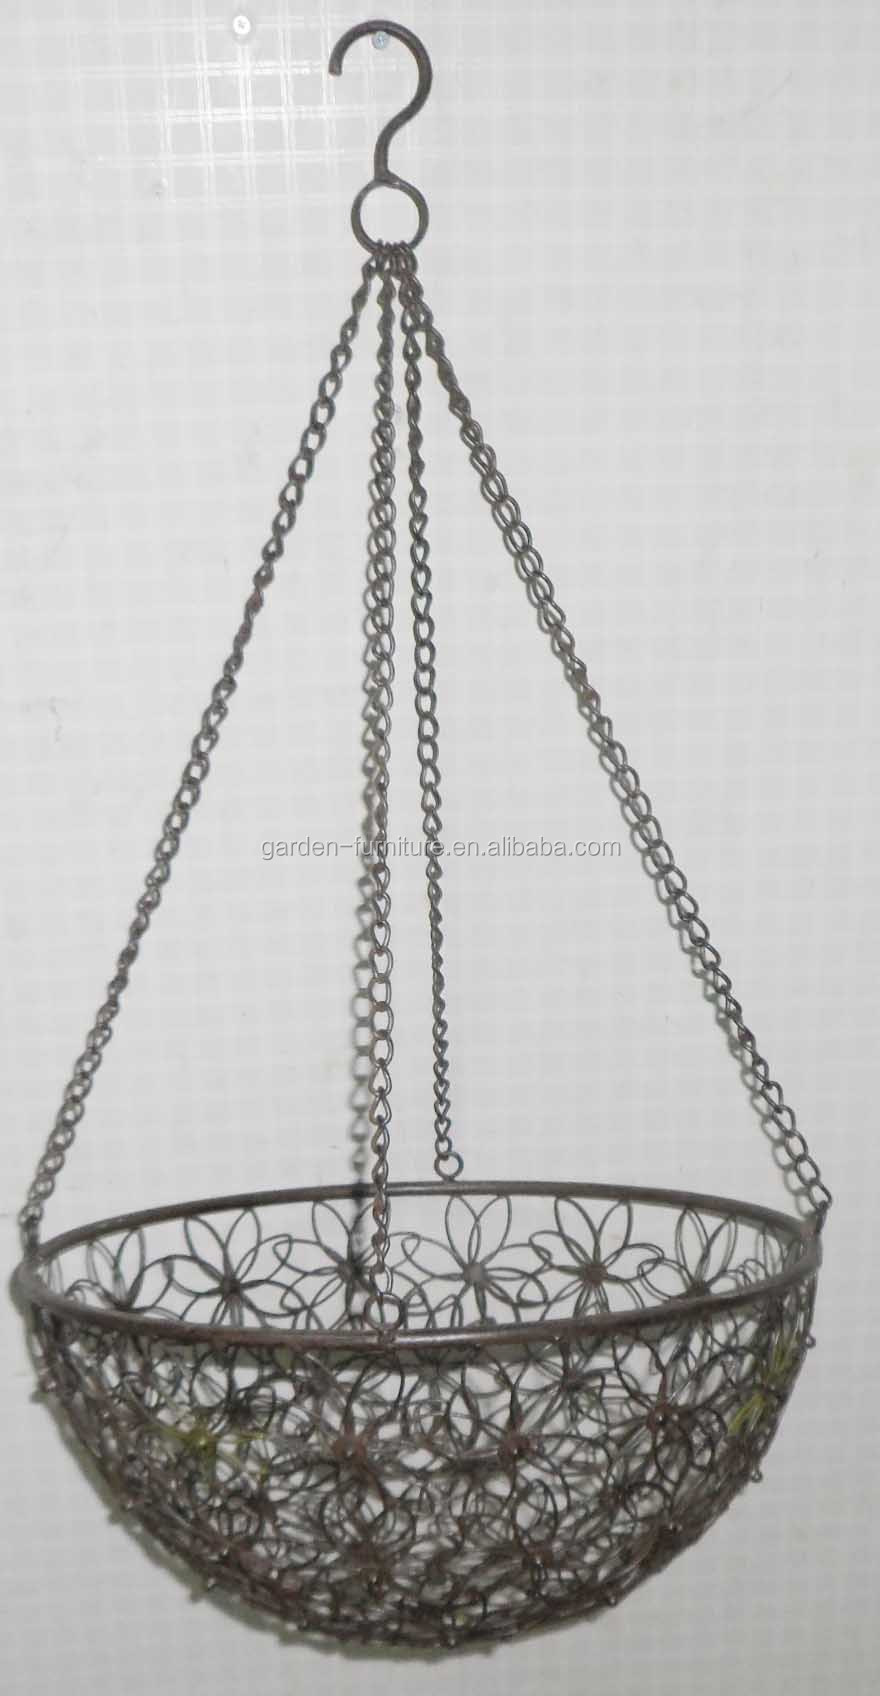 Charmant Metal Hanging Basket Planter